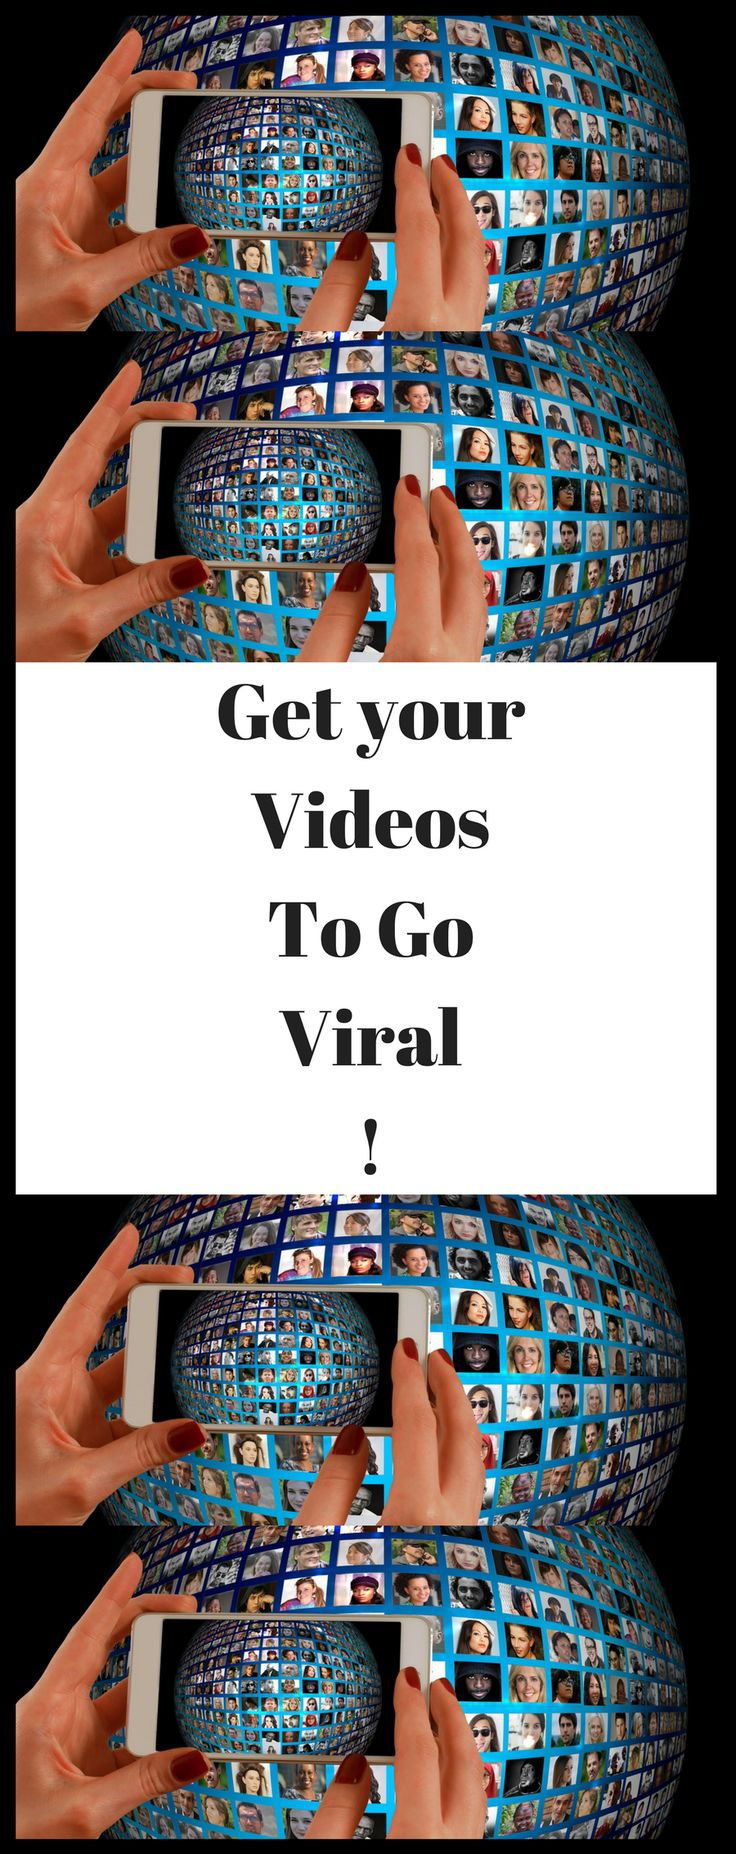 Great tips from industry leaders on how to go viral